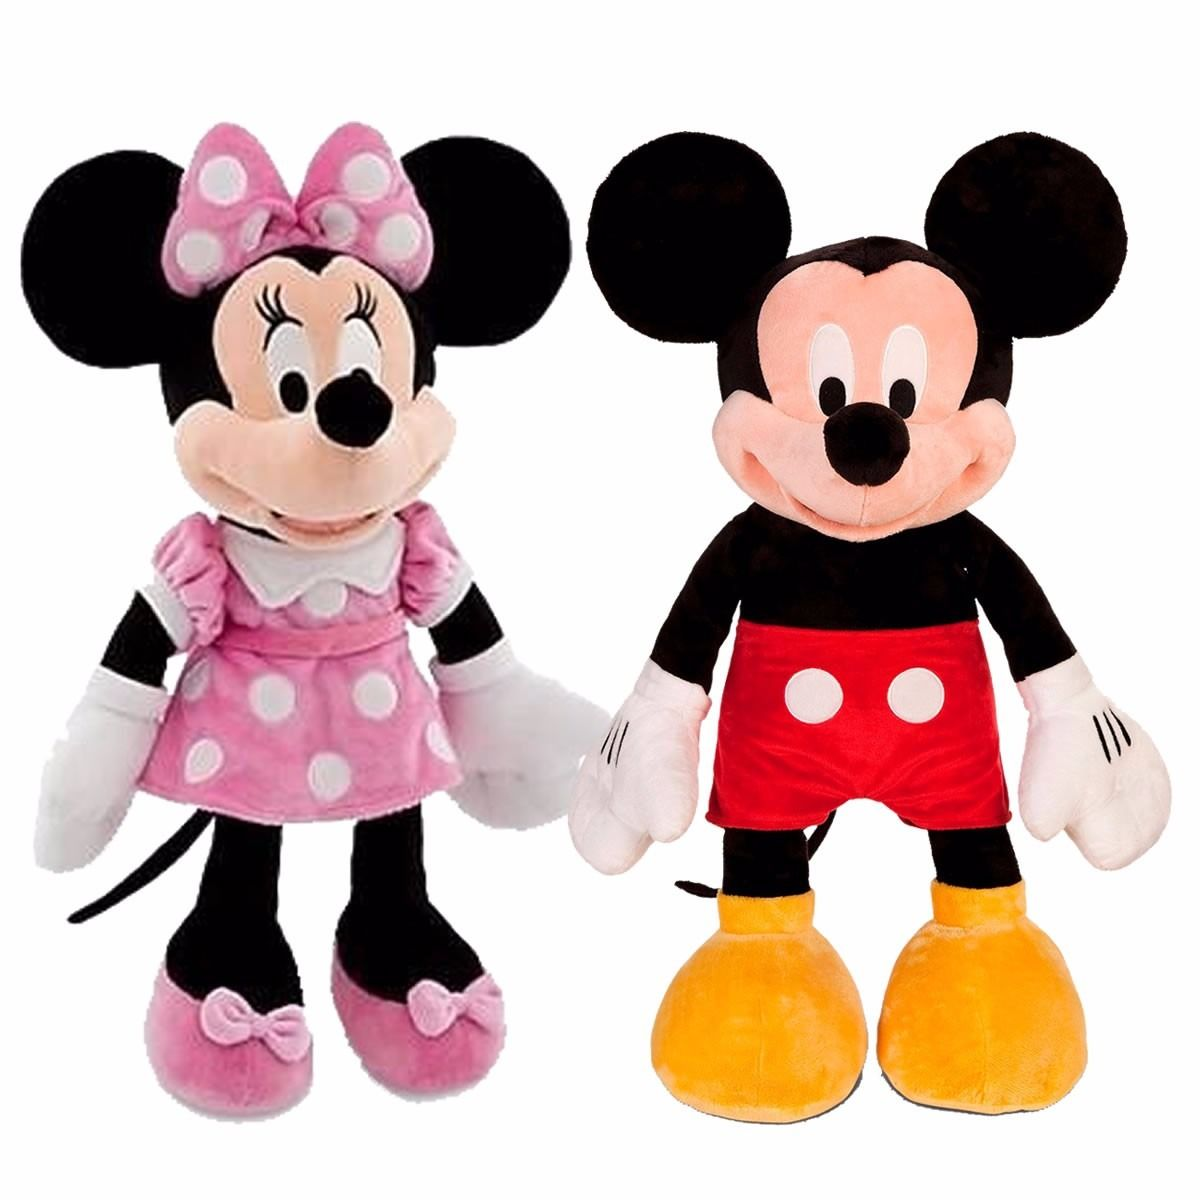 disney peluche mickey o minnie mouse grande 65 cm original. Black Bedroom Furniture Sets. Home Design Ideas